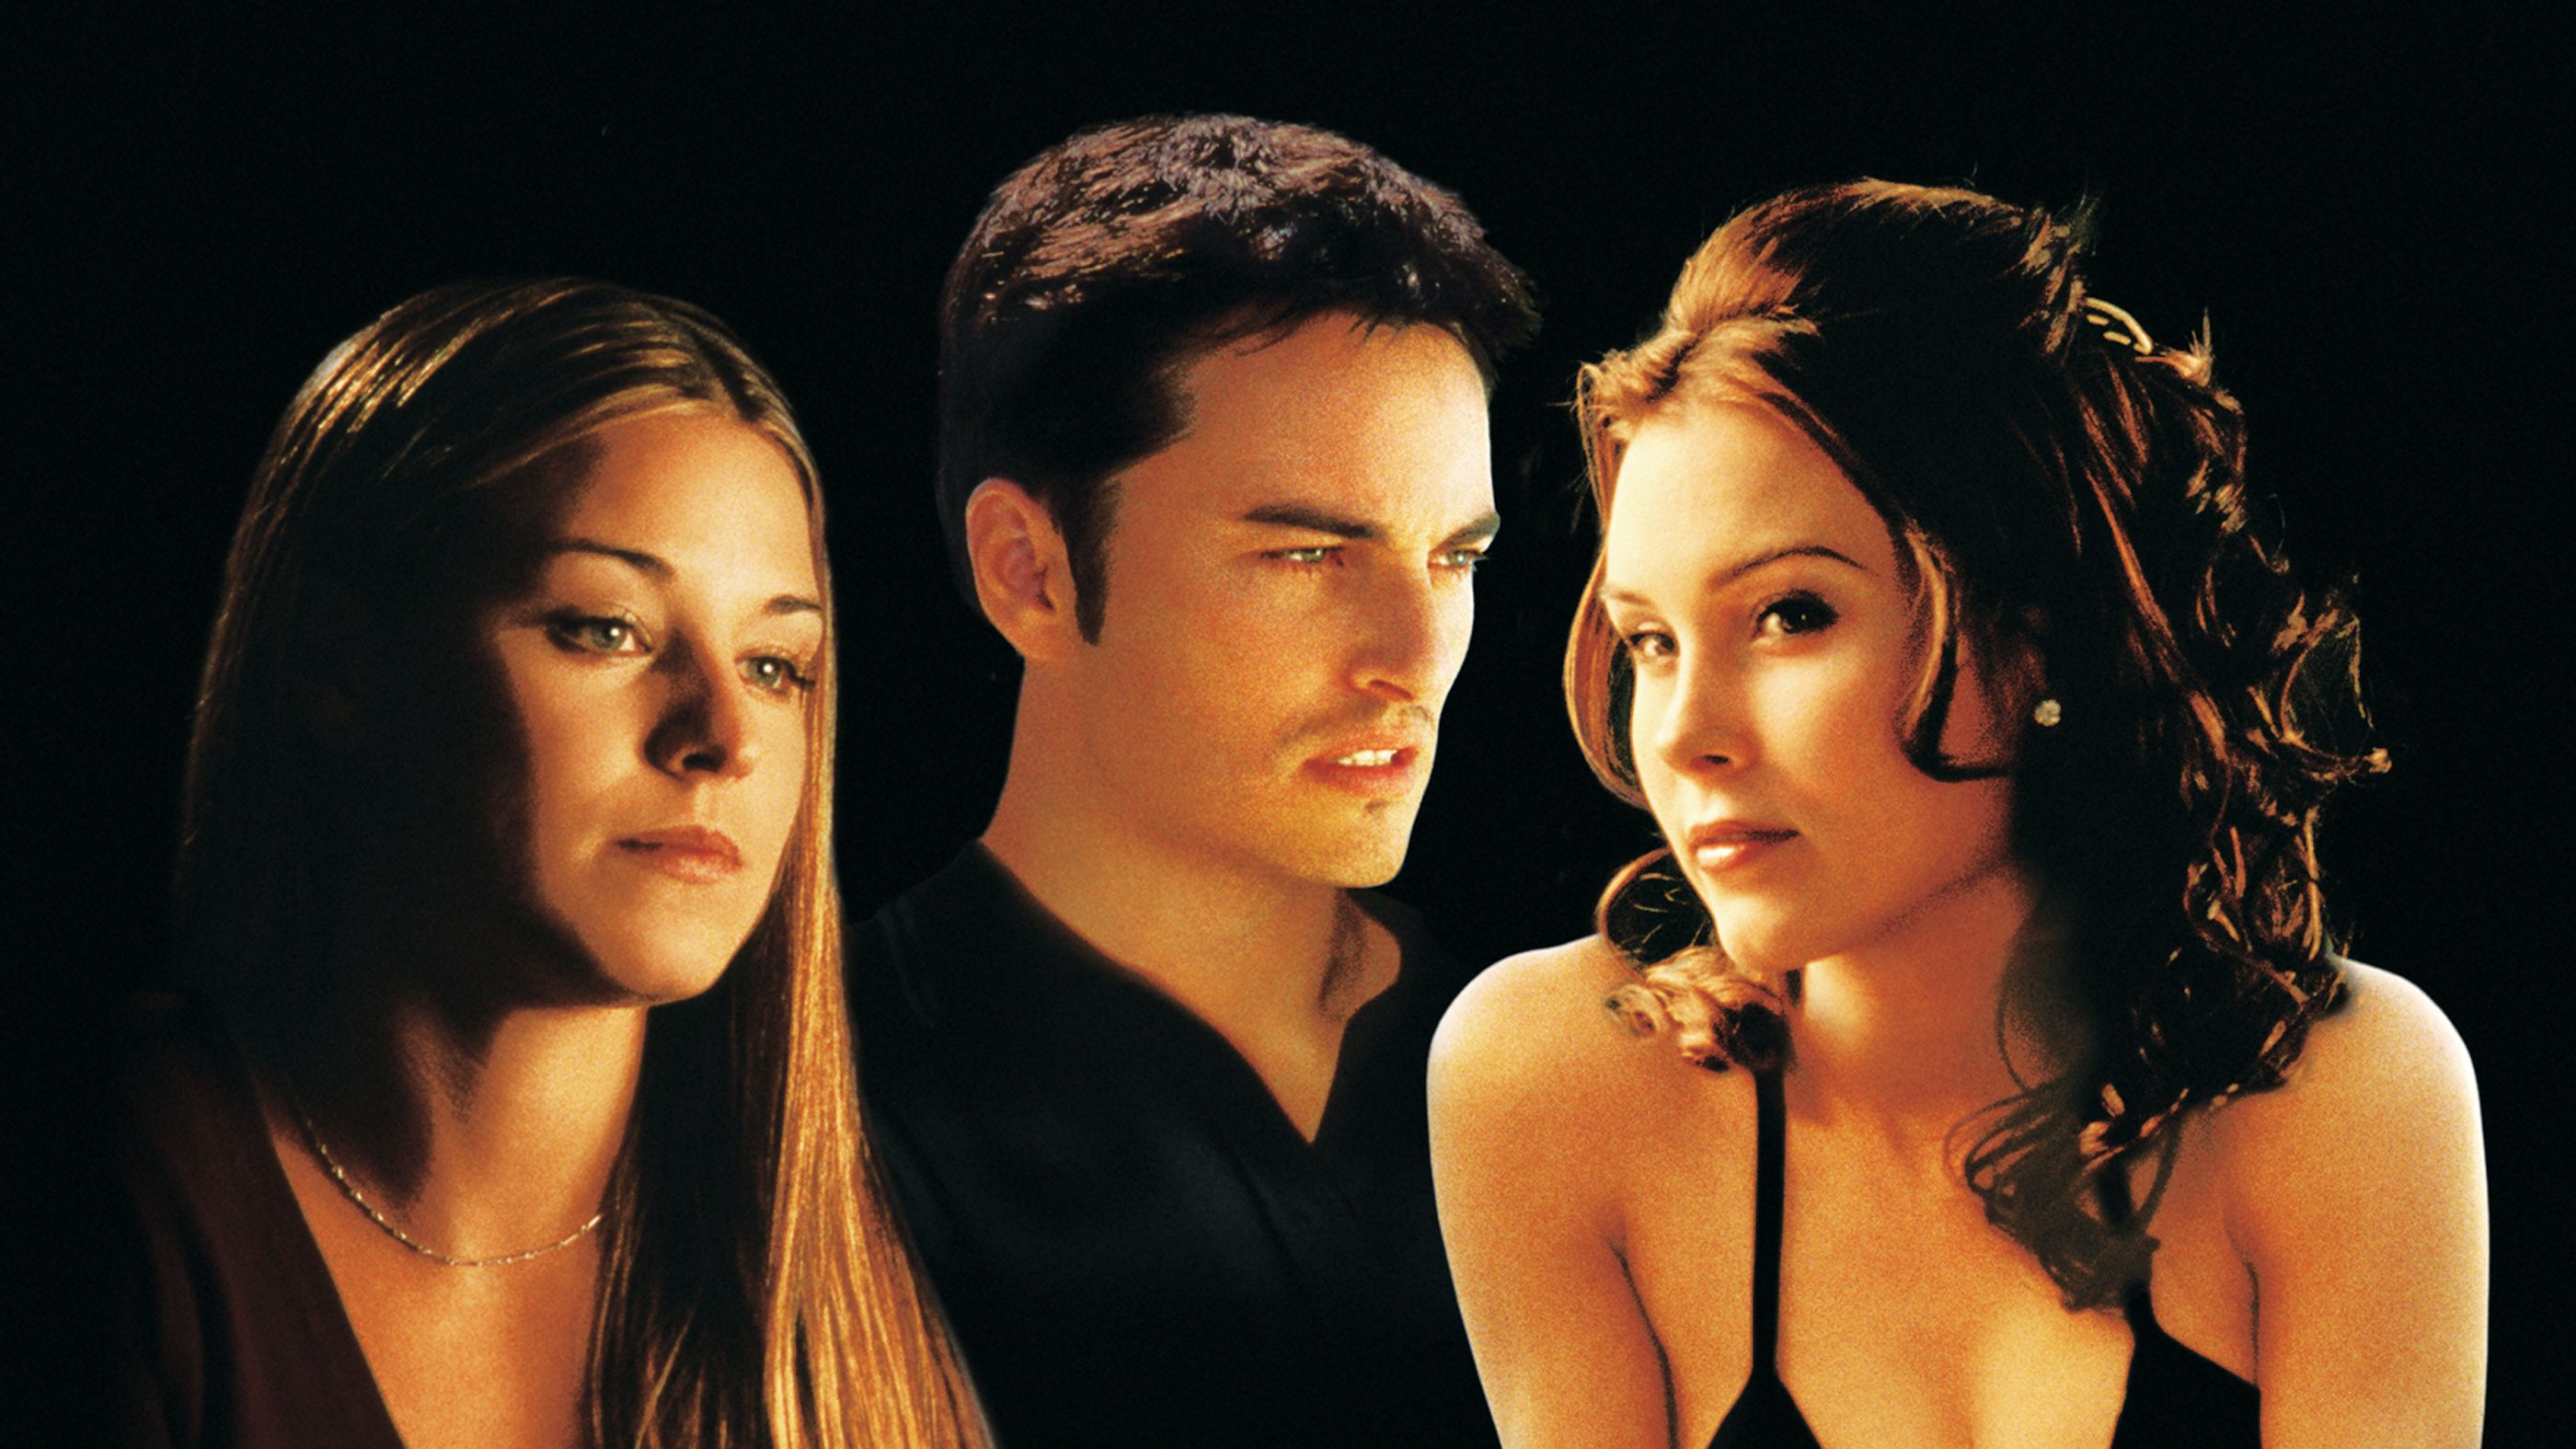 cruel intentions full movie - HD 2800×1575